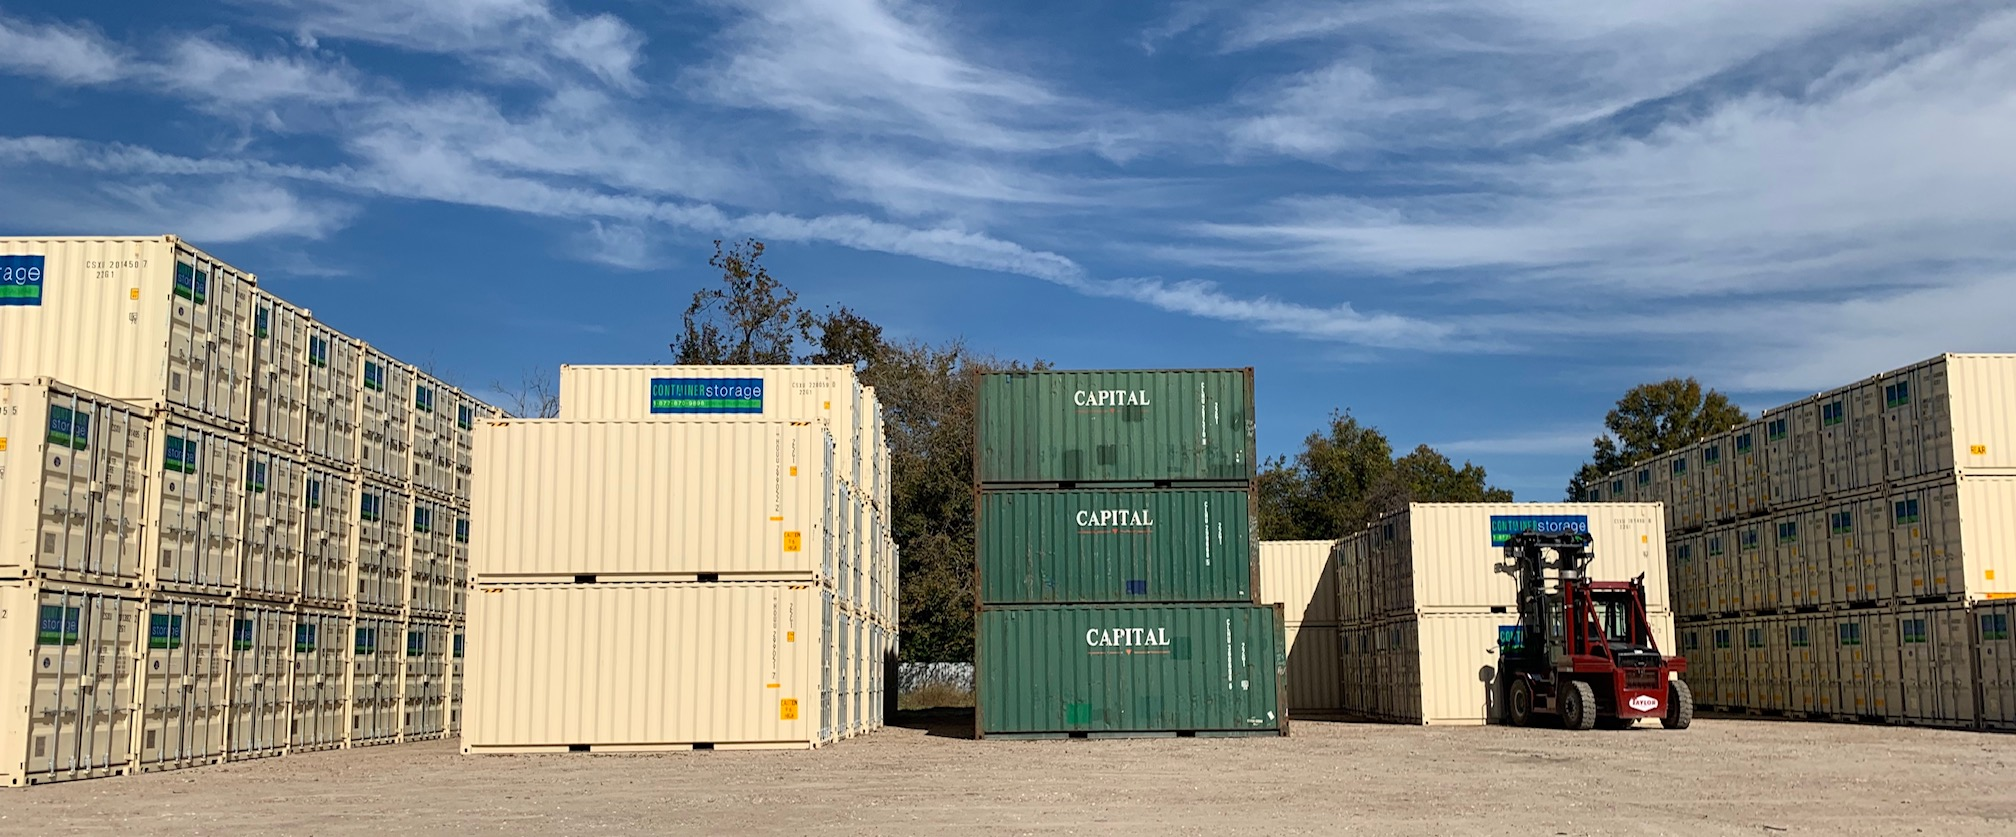 rent-or-buy-storage-containers-houston-texas.jpg